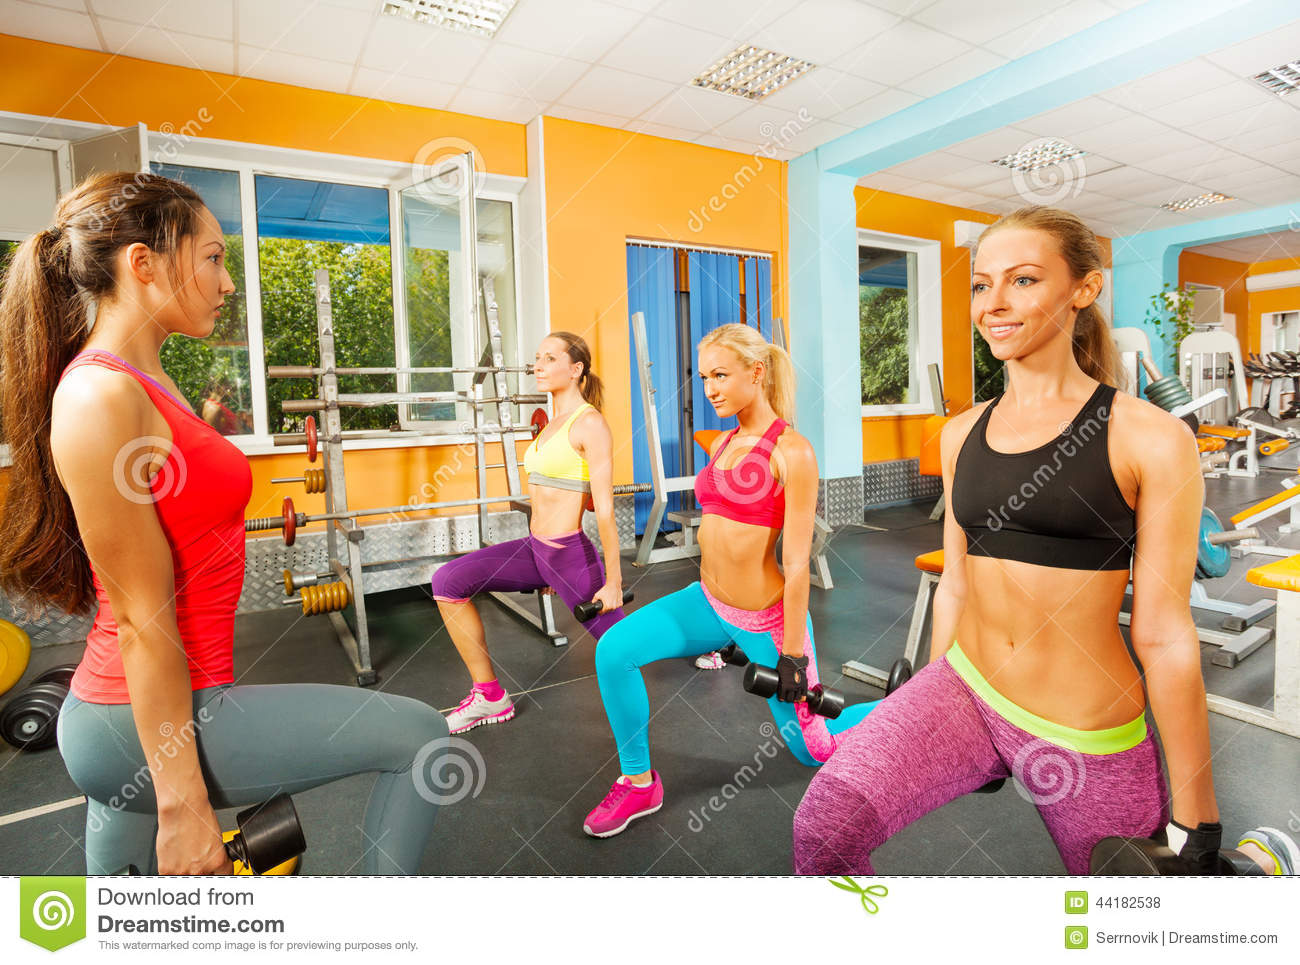 hook up with a girl at the gym There are so many amazing looking girls at my gym how to ask a girl out at the gym w/o being creepy for more powerful strategies for hooking up with.